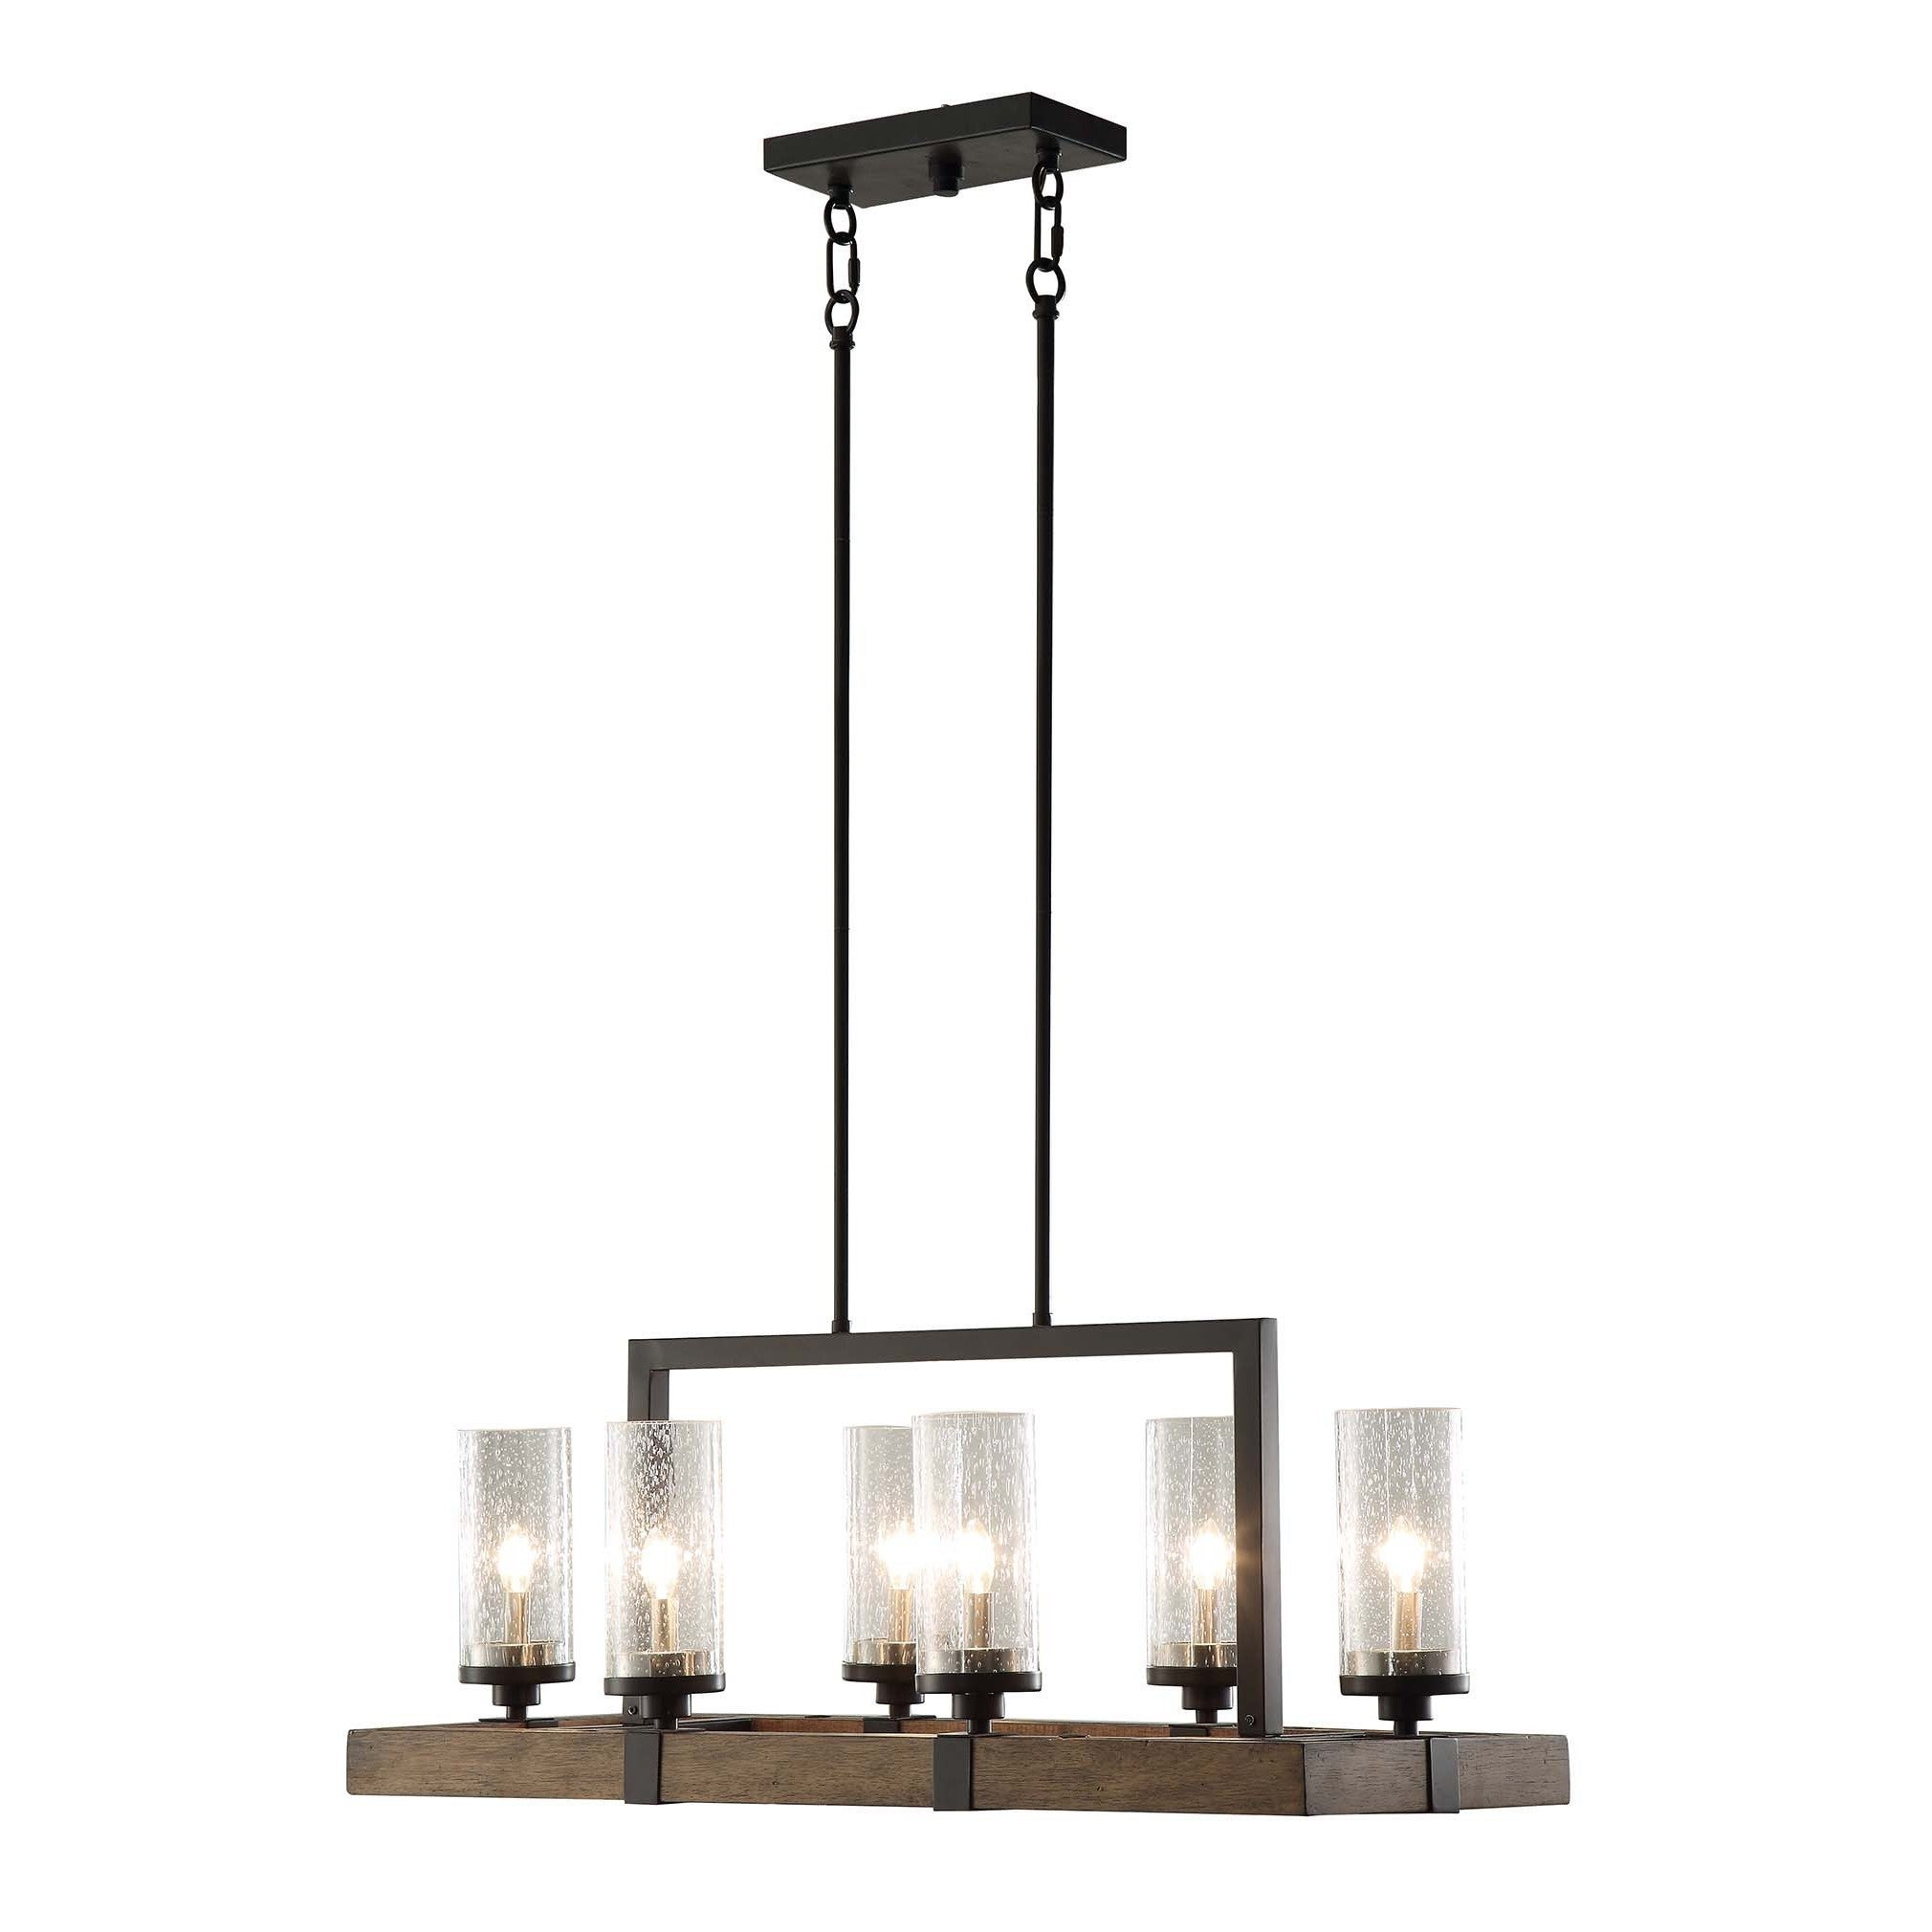 Vineyard metal and wood 6 light chandelier with seeded glass shades vineyard metal and wood 6 light chandelier with seeded glass shades free shipping today overstock 17484995 arubaitofo Images